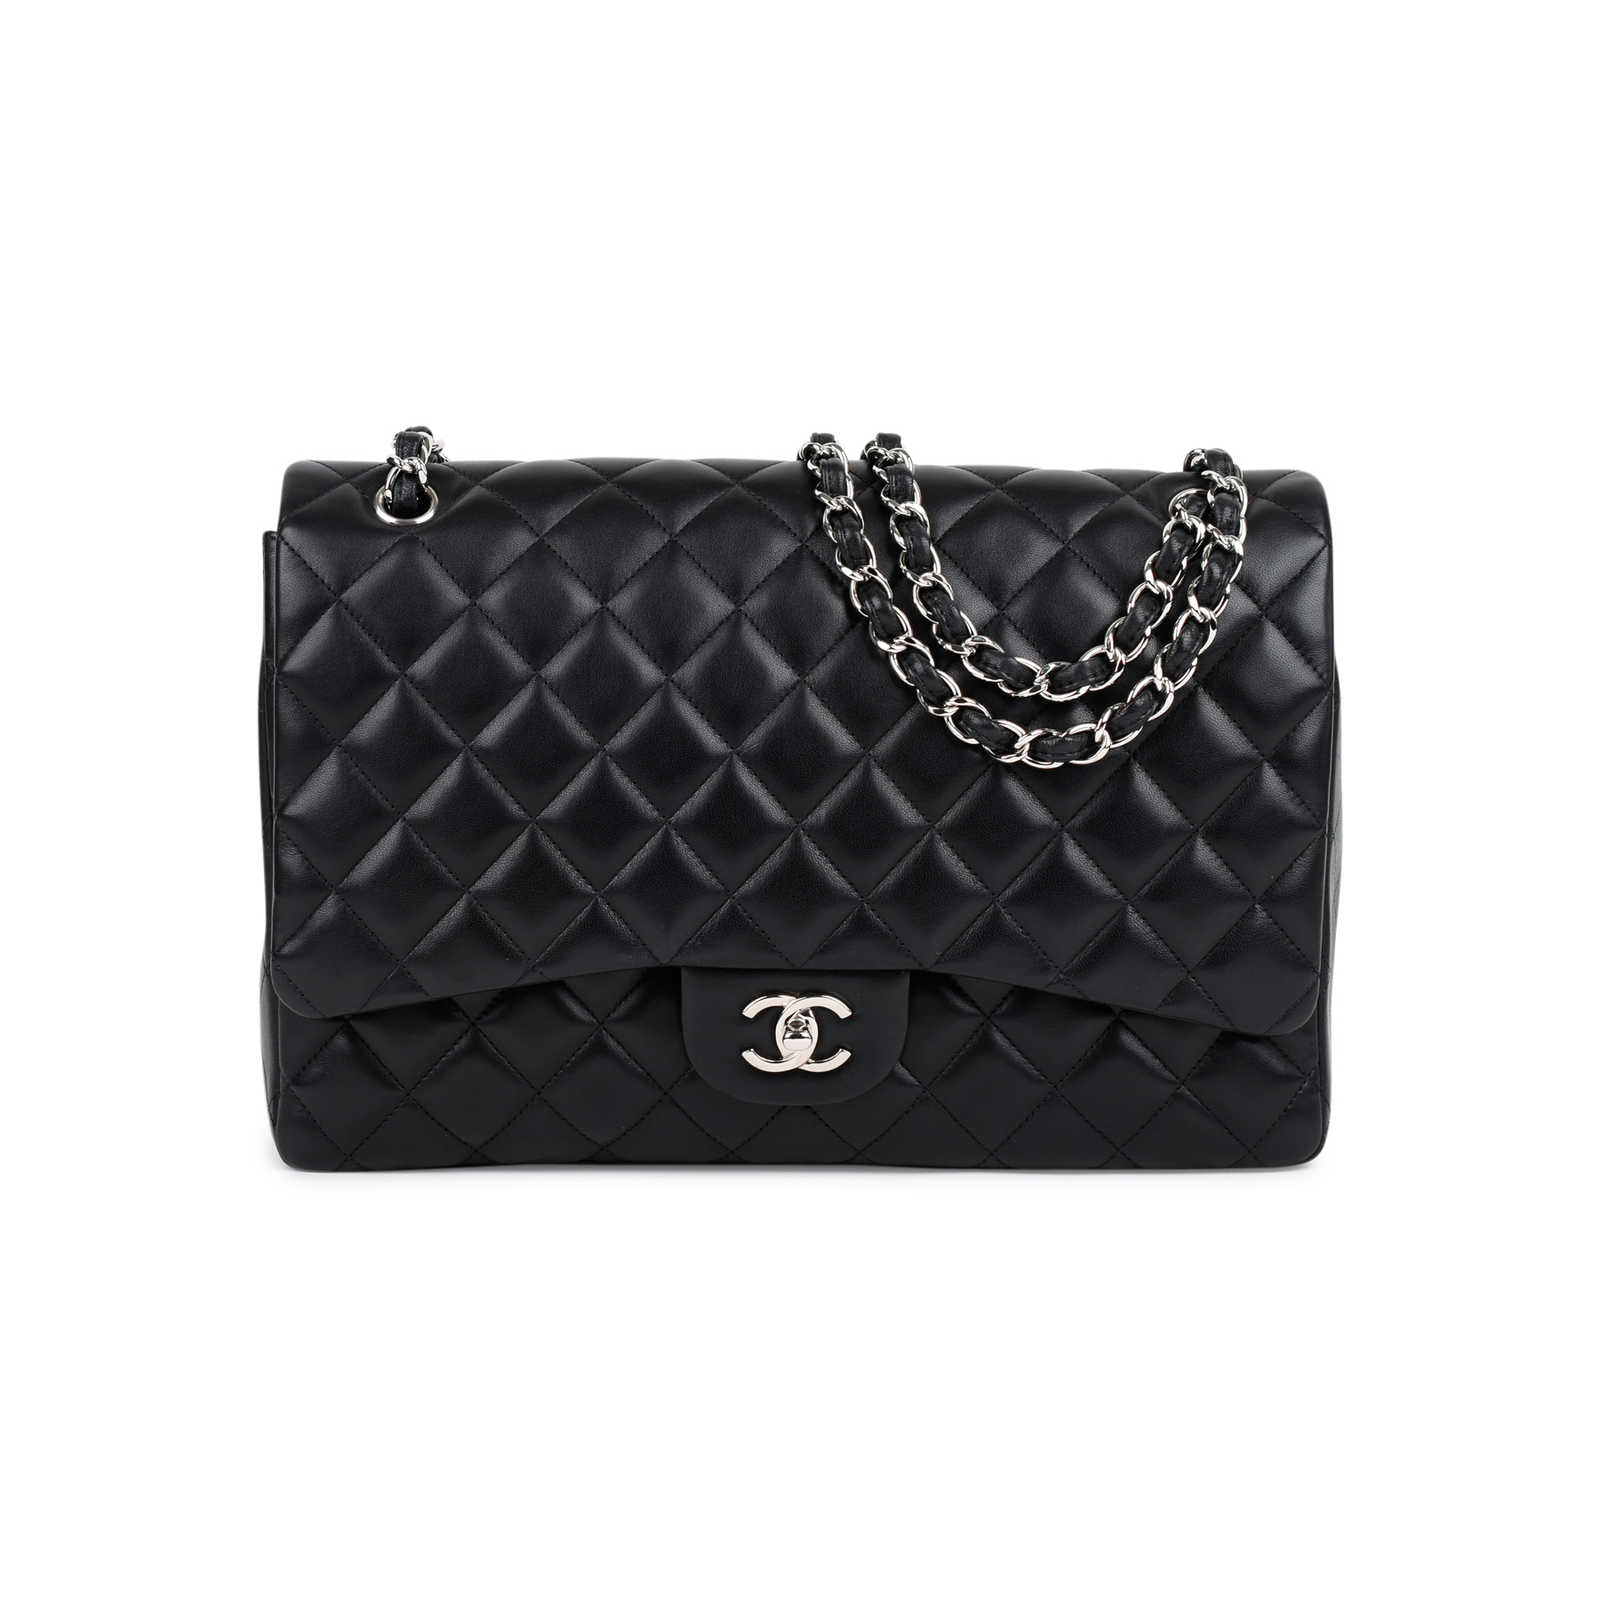 4010db5965d6 Authentic Second Hand Chanel Classic Maxi Flap Bag (PSS-464-00005) ...